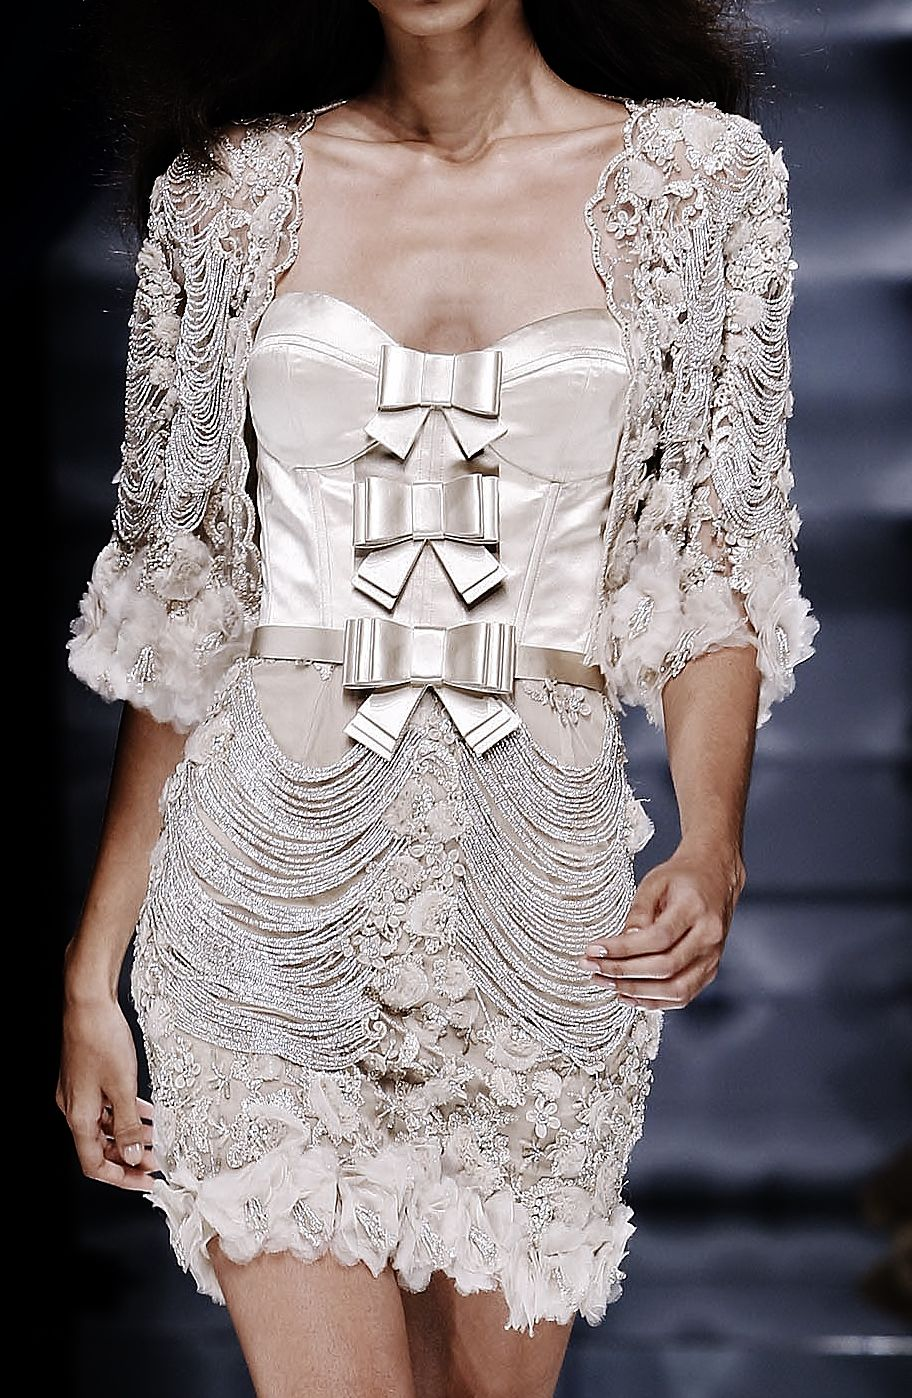 People will stare. Make it worth their while → Zuhair Murad Haute Couture | F/W '10-'11